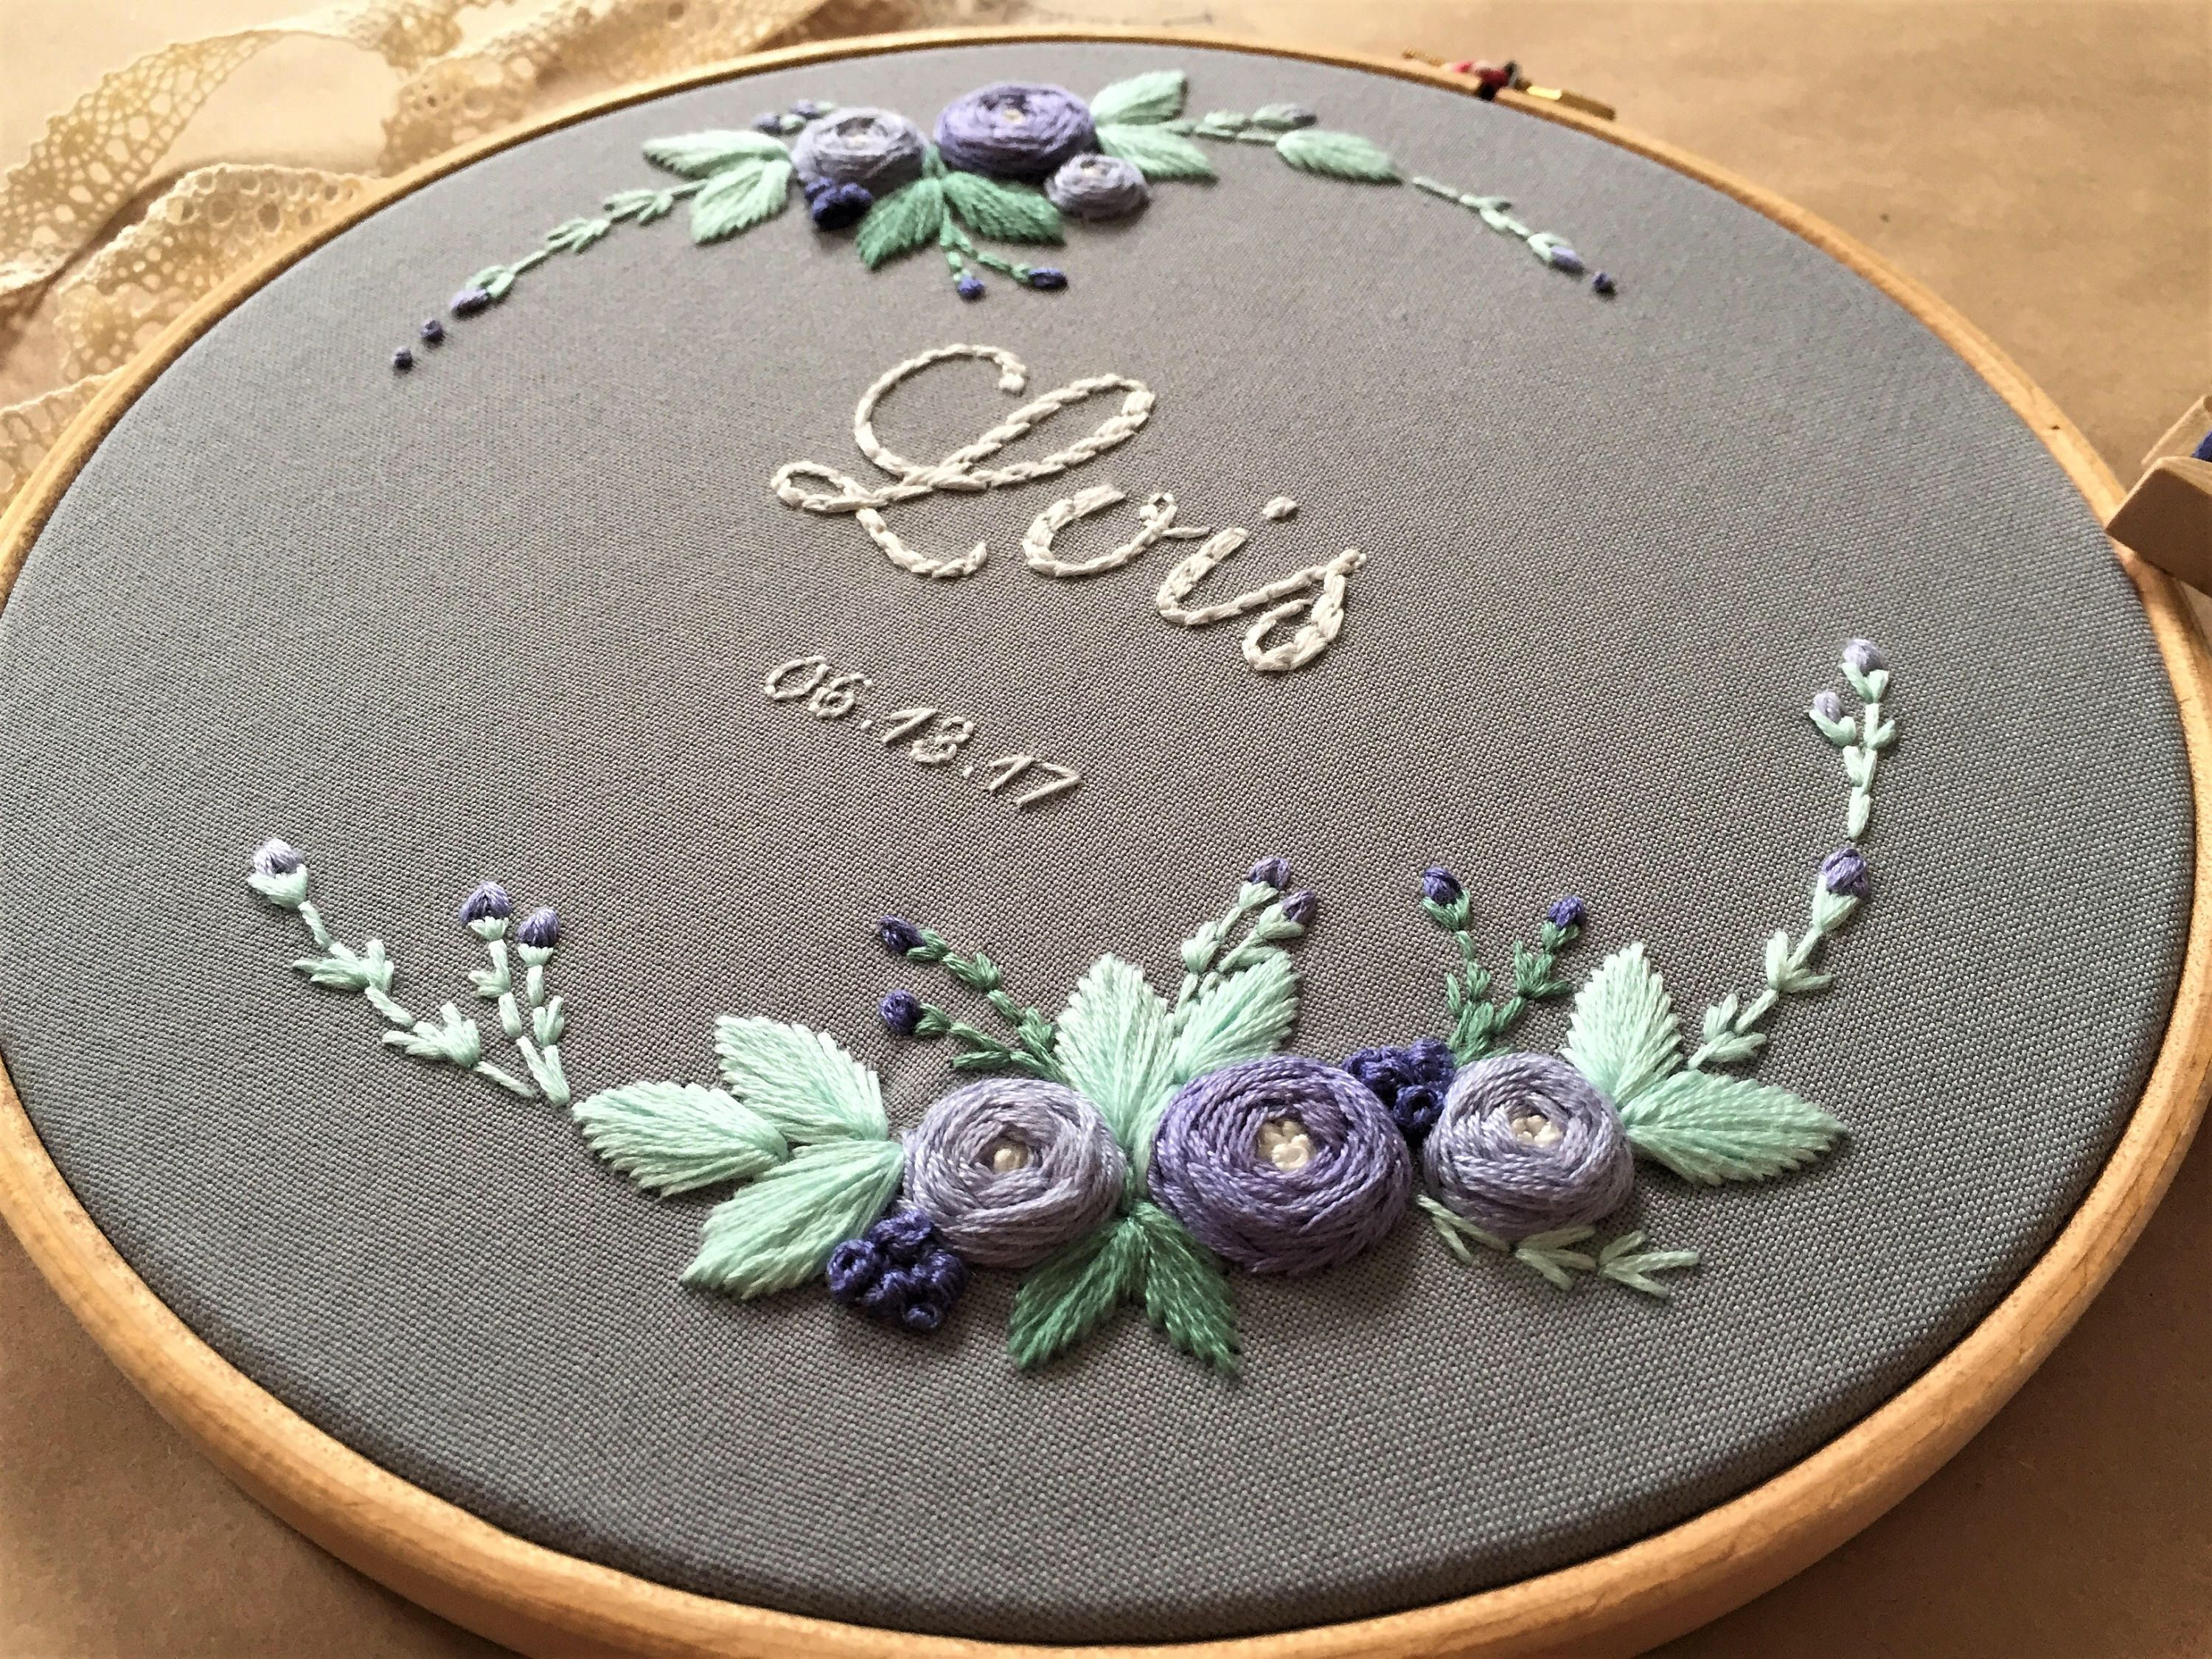 Custom Name Embroidery, Nursery Decor, Baby Shower Gift, Embroidery Hoop Art, Nursery Wall Art, Personalized Gift, Broderie, Hand Embroidery – embroidery